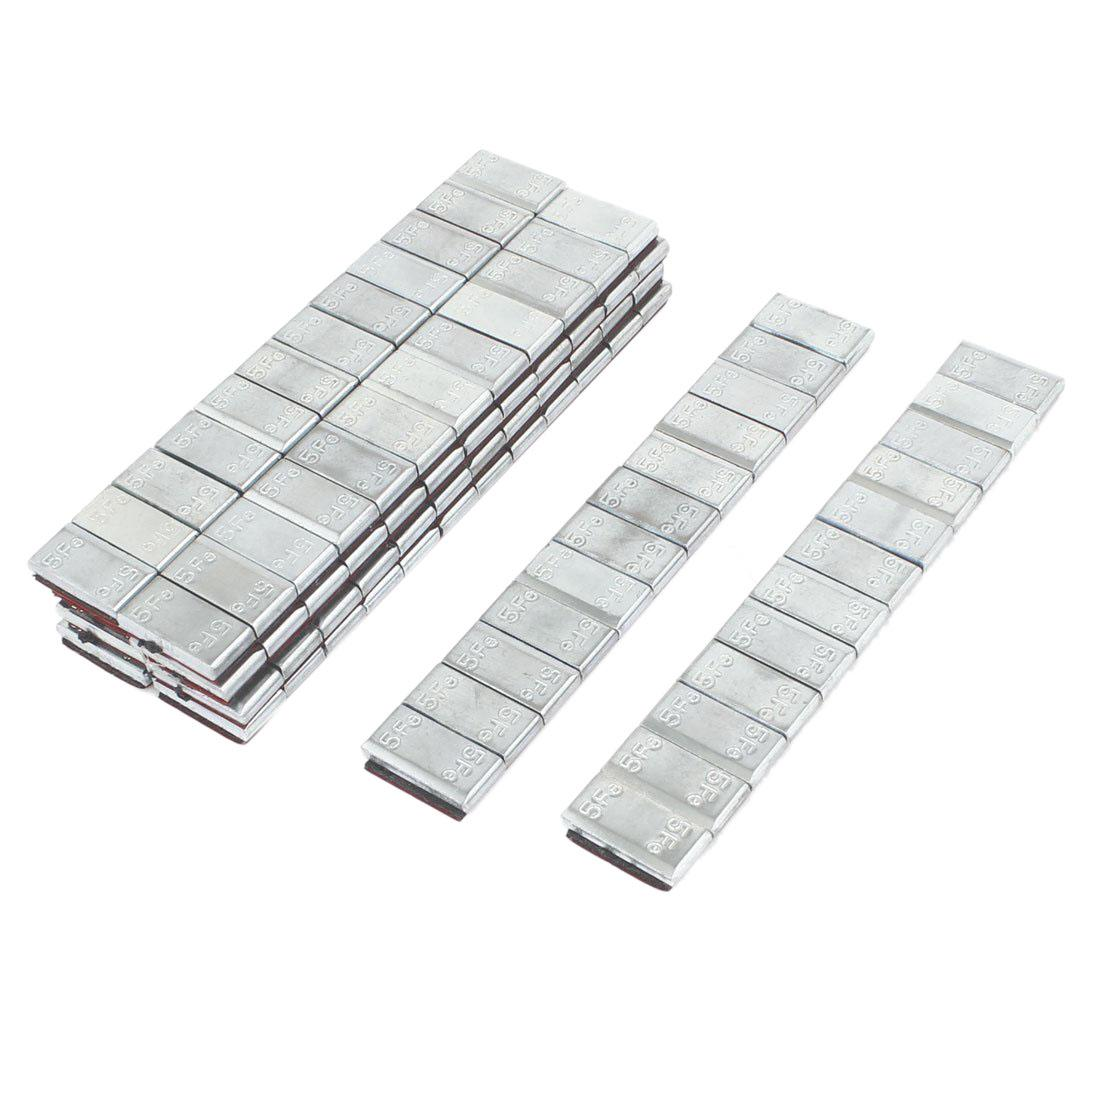 10pcs Adhesive Back Metal Tire Wheel Balance Weight Strip For Car By Xhkjin.